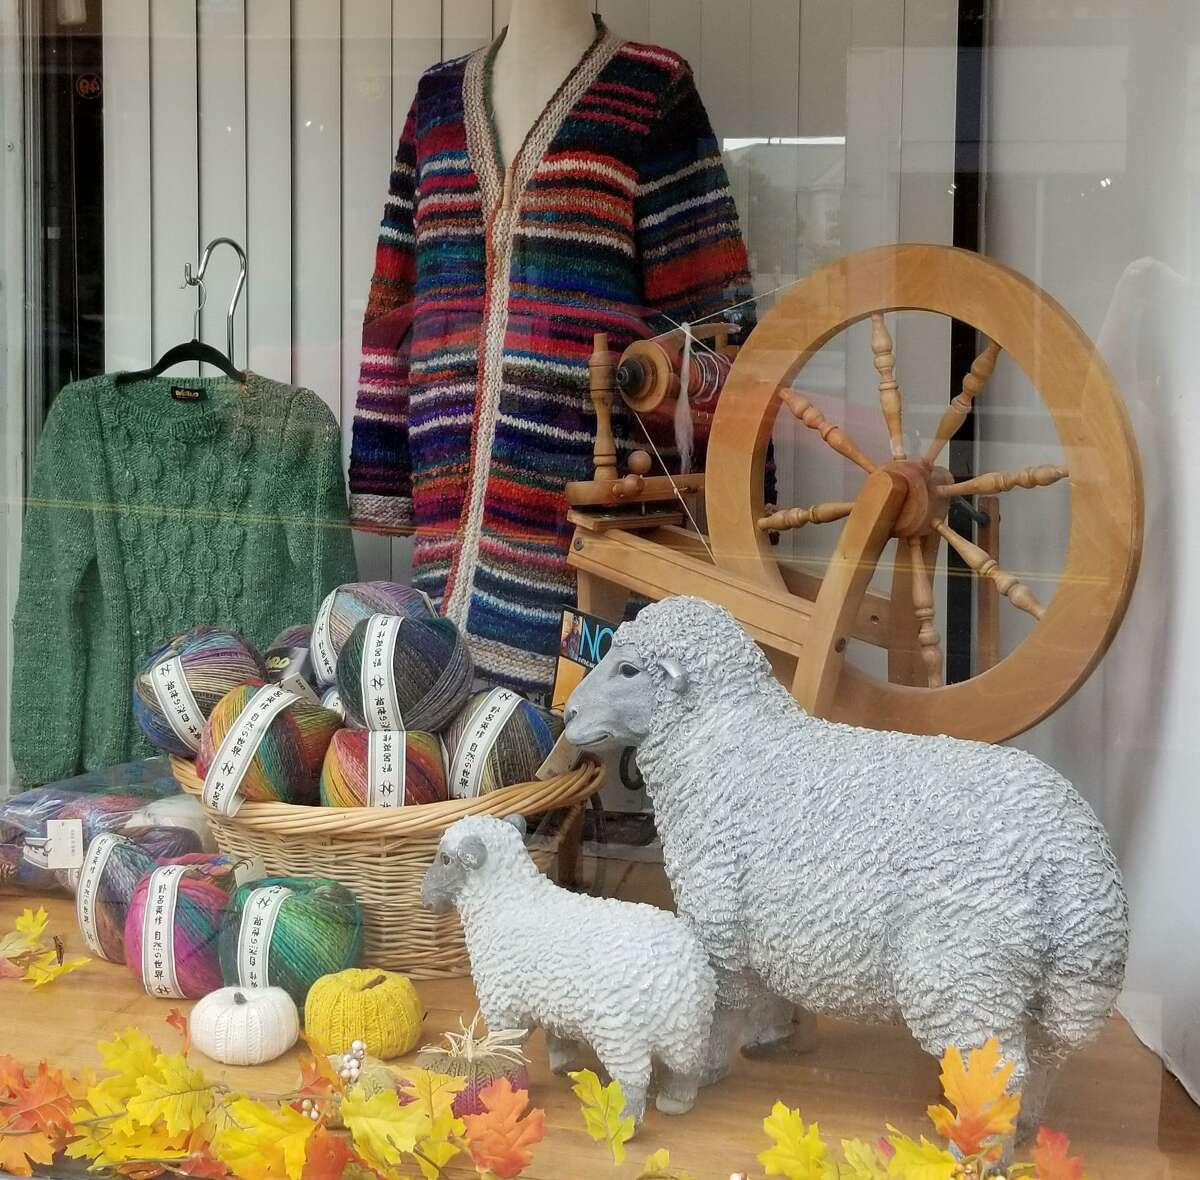 Don't miss the Fall Yarn Crawl, which runs from Oct. 1-11.